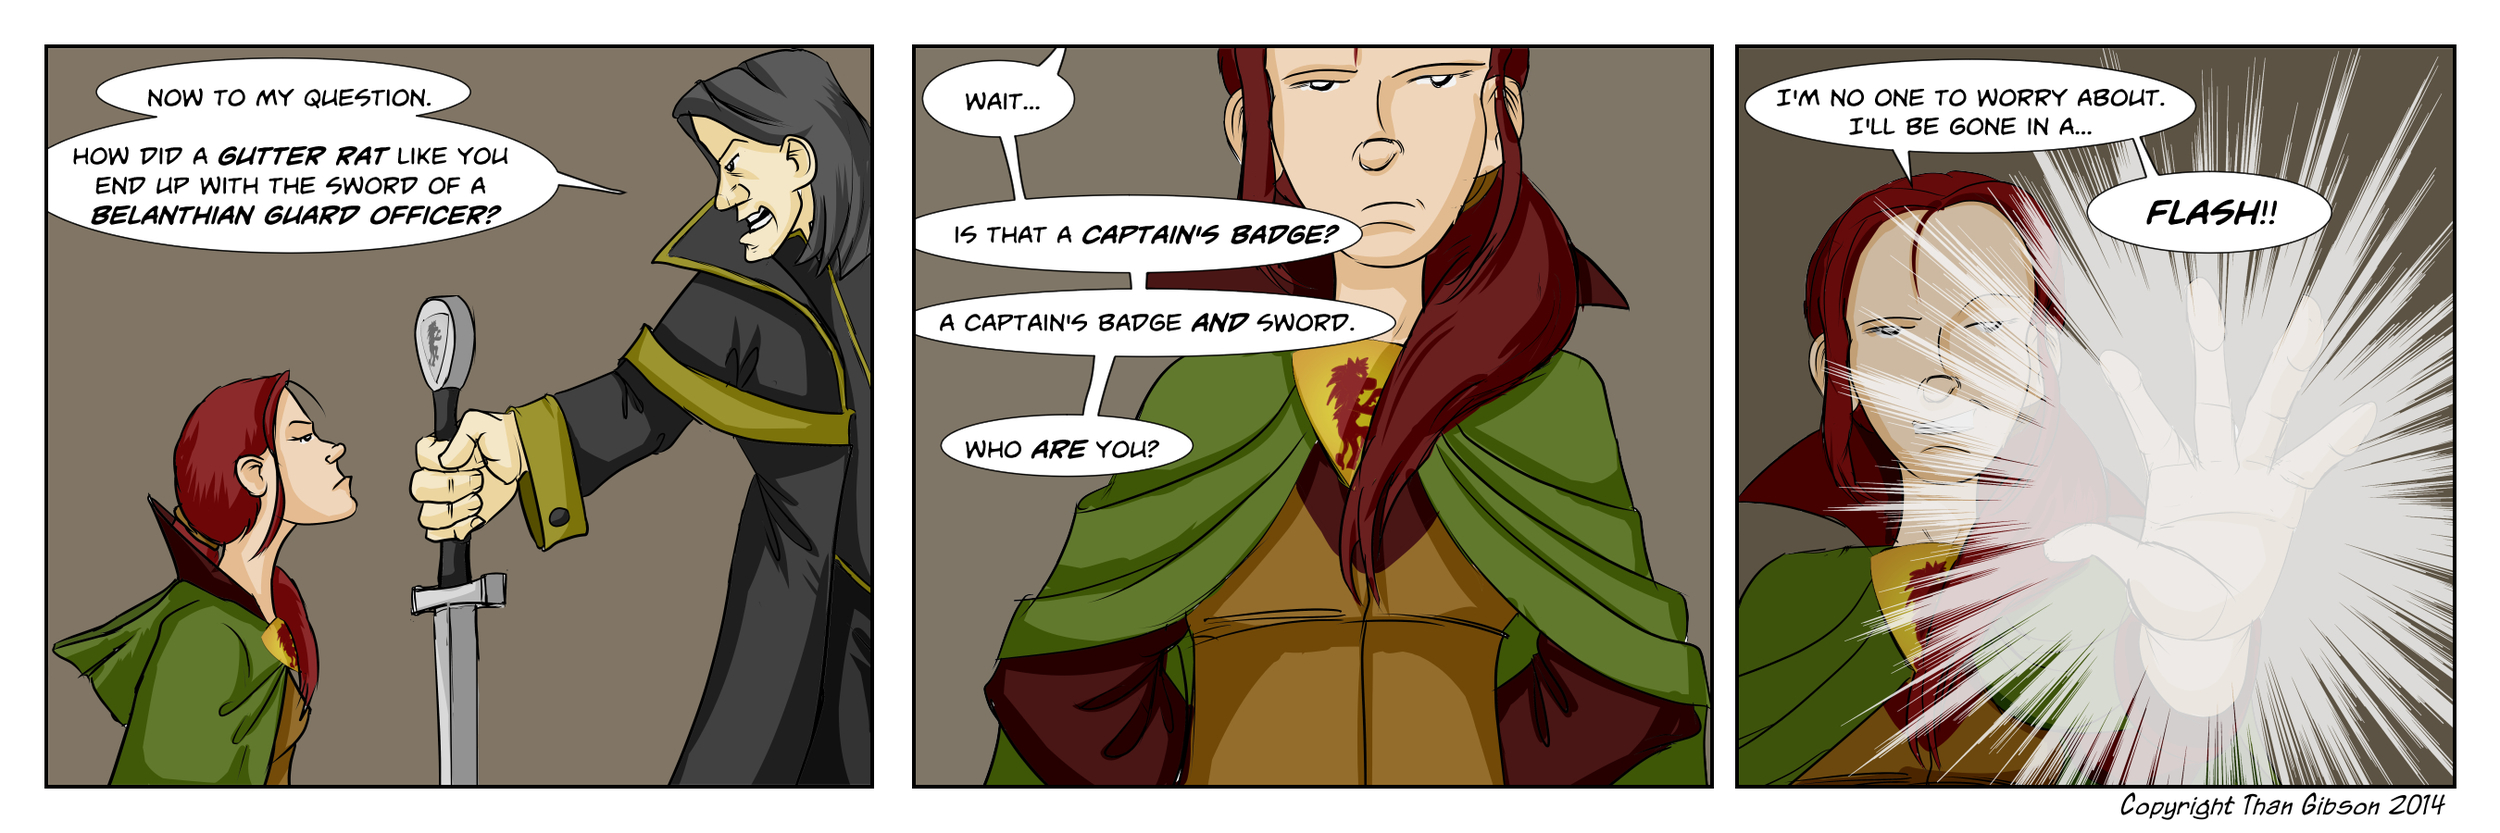 Strip 36 - Click image for larger view!